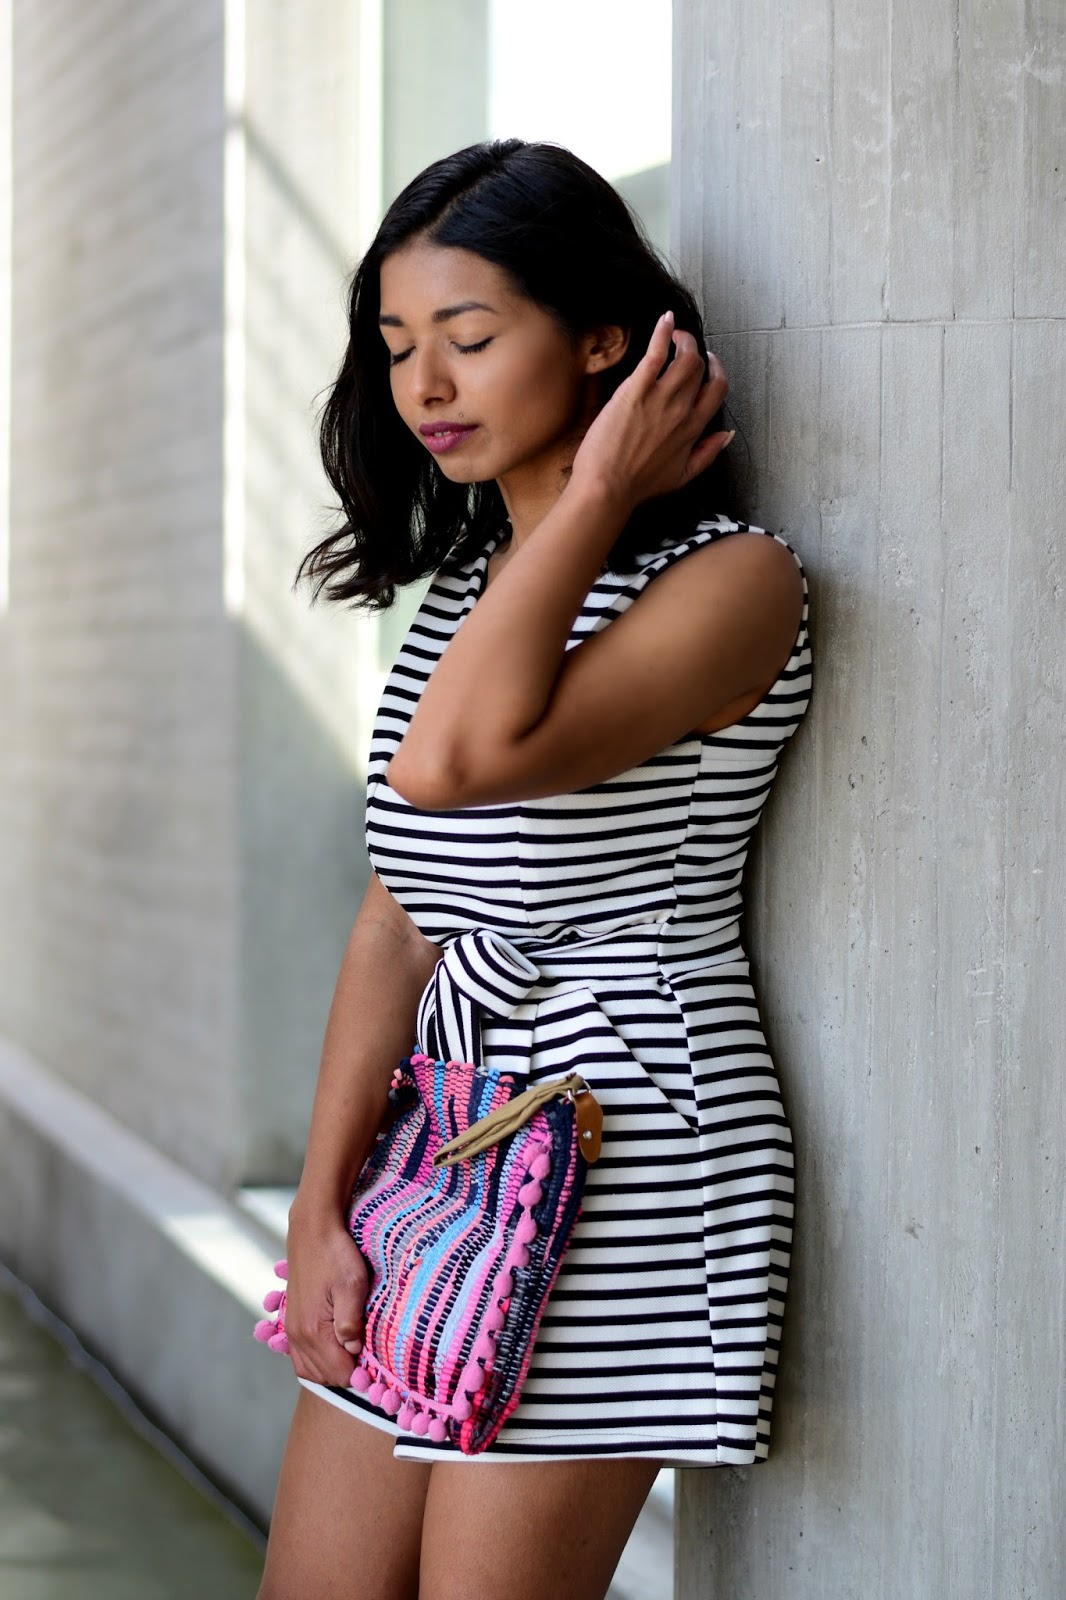 summer striped dress and gladiator sandals outfit ideas